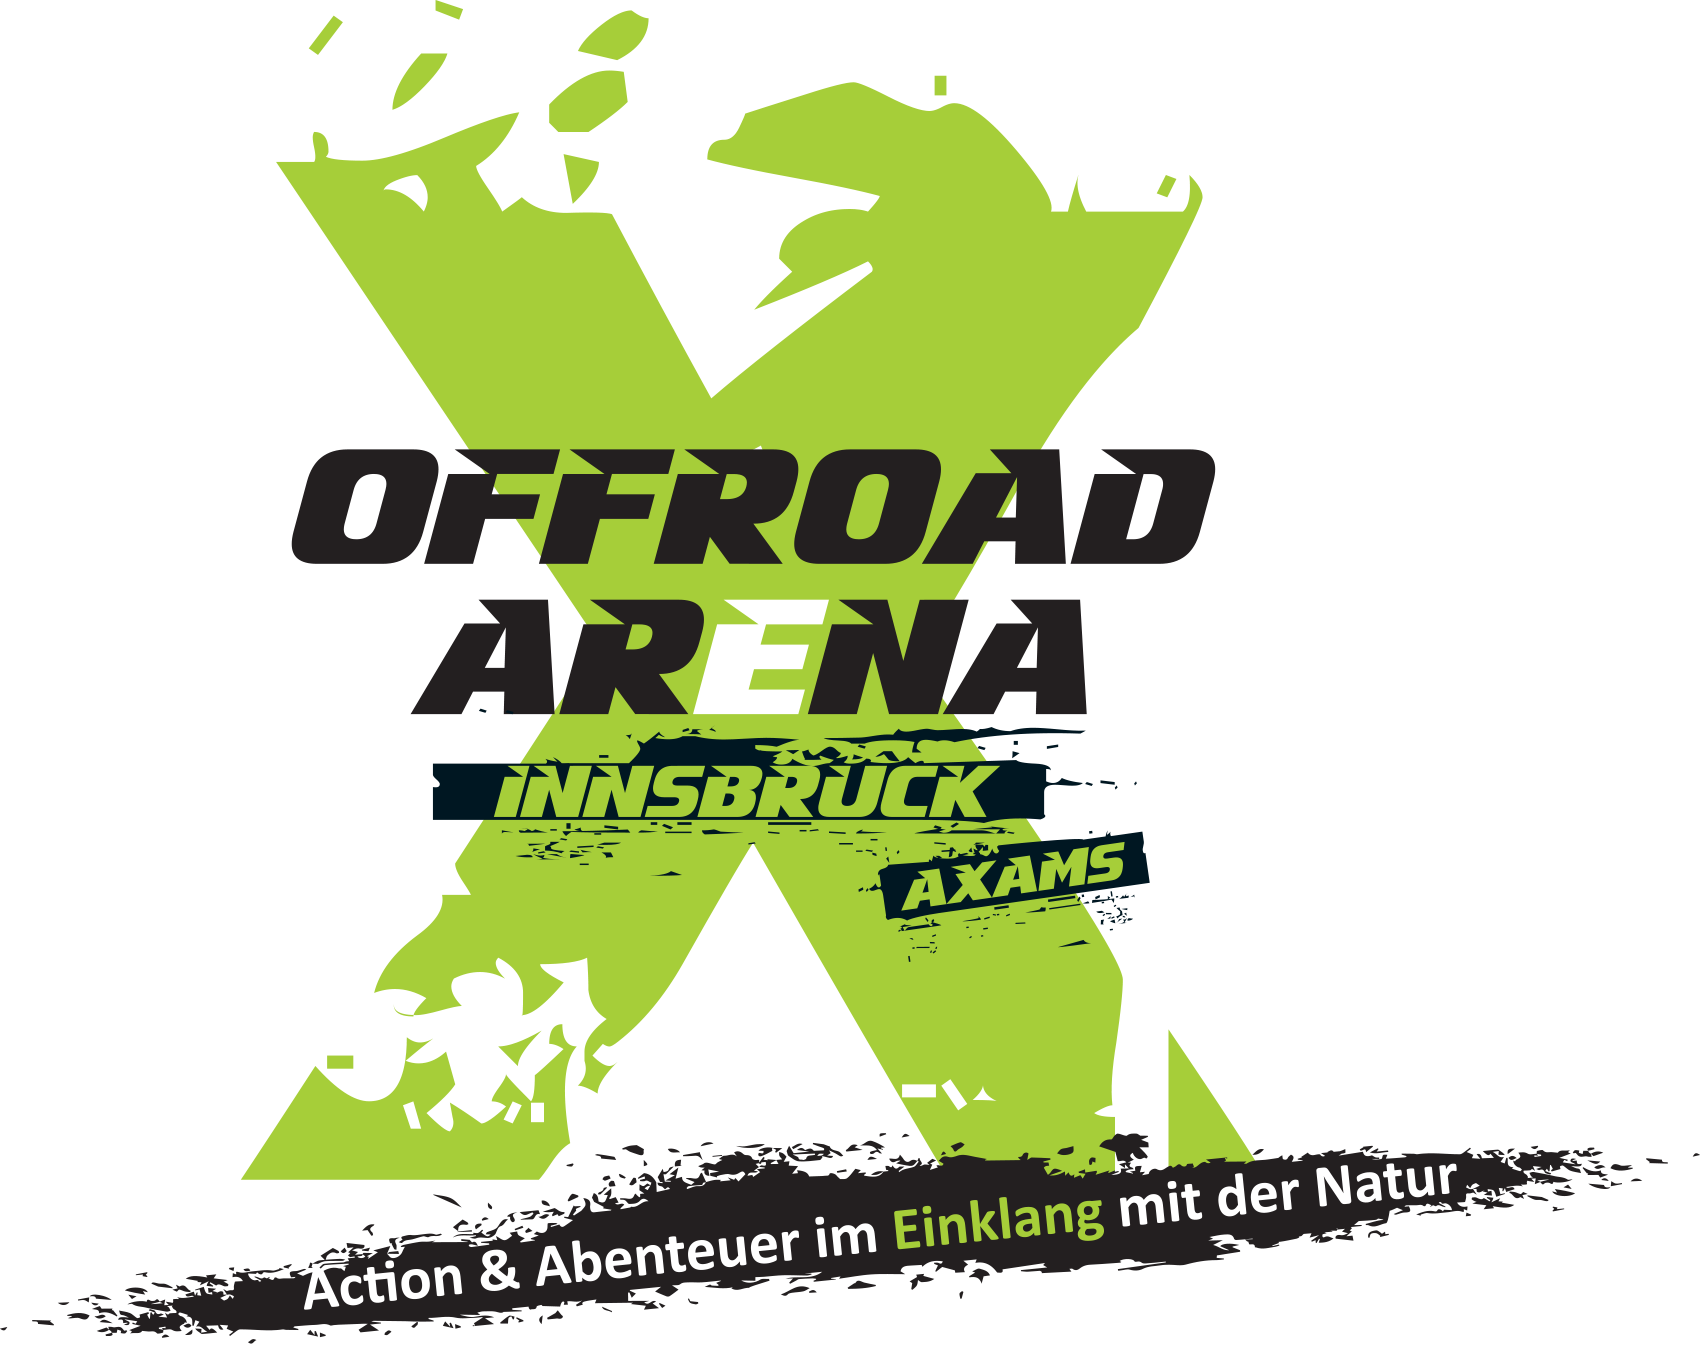 Offroad Arena logo in green and black colors